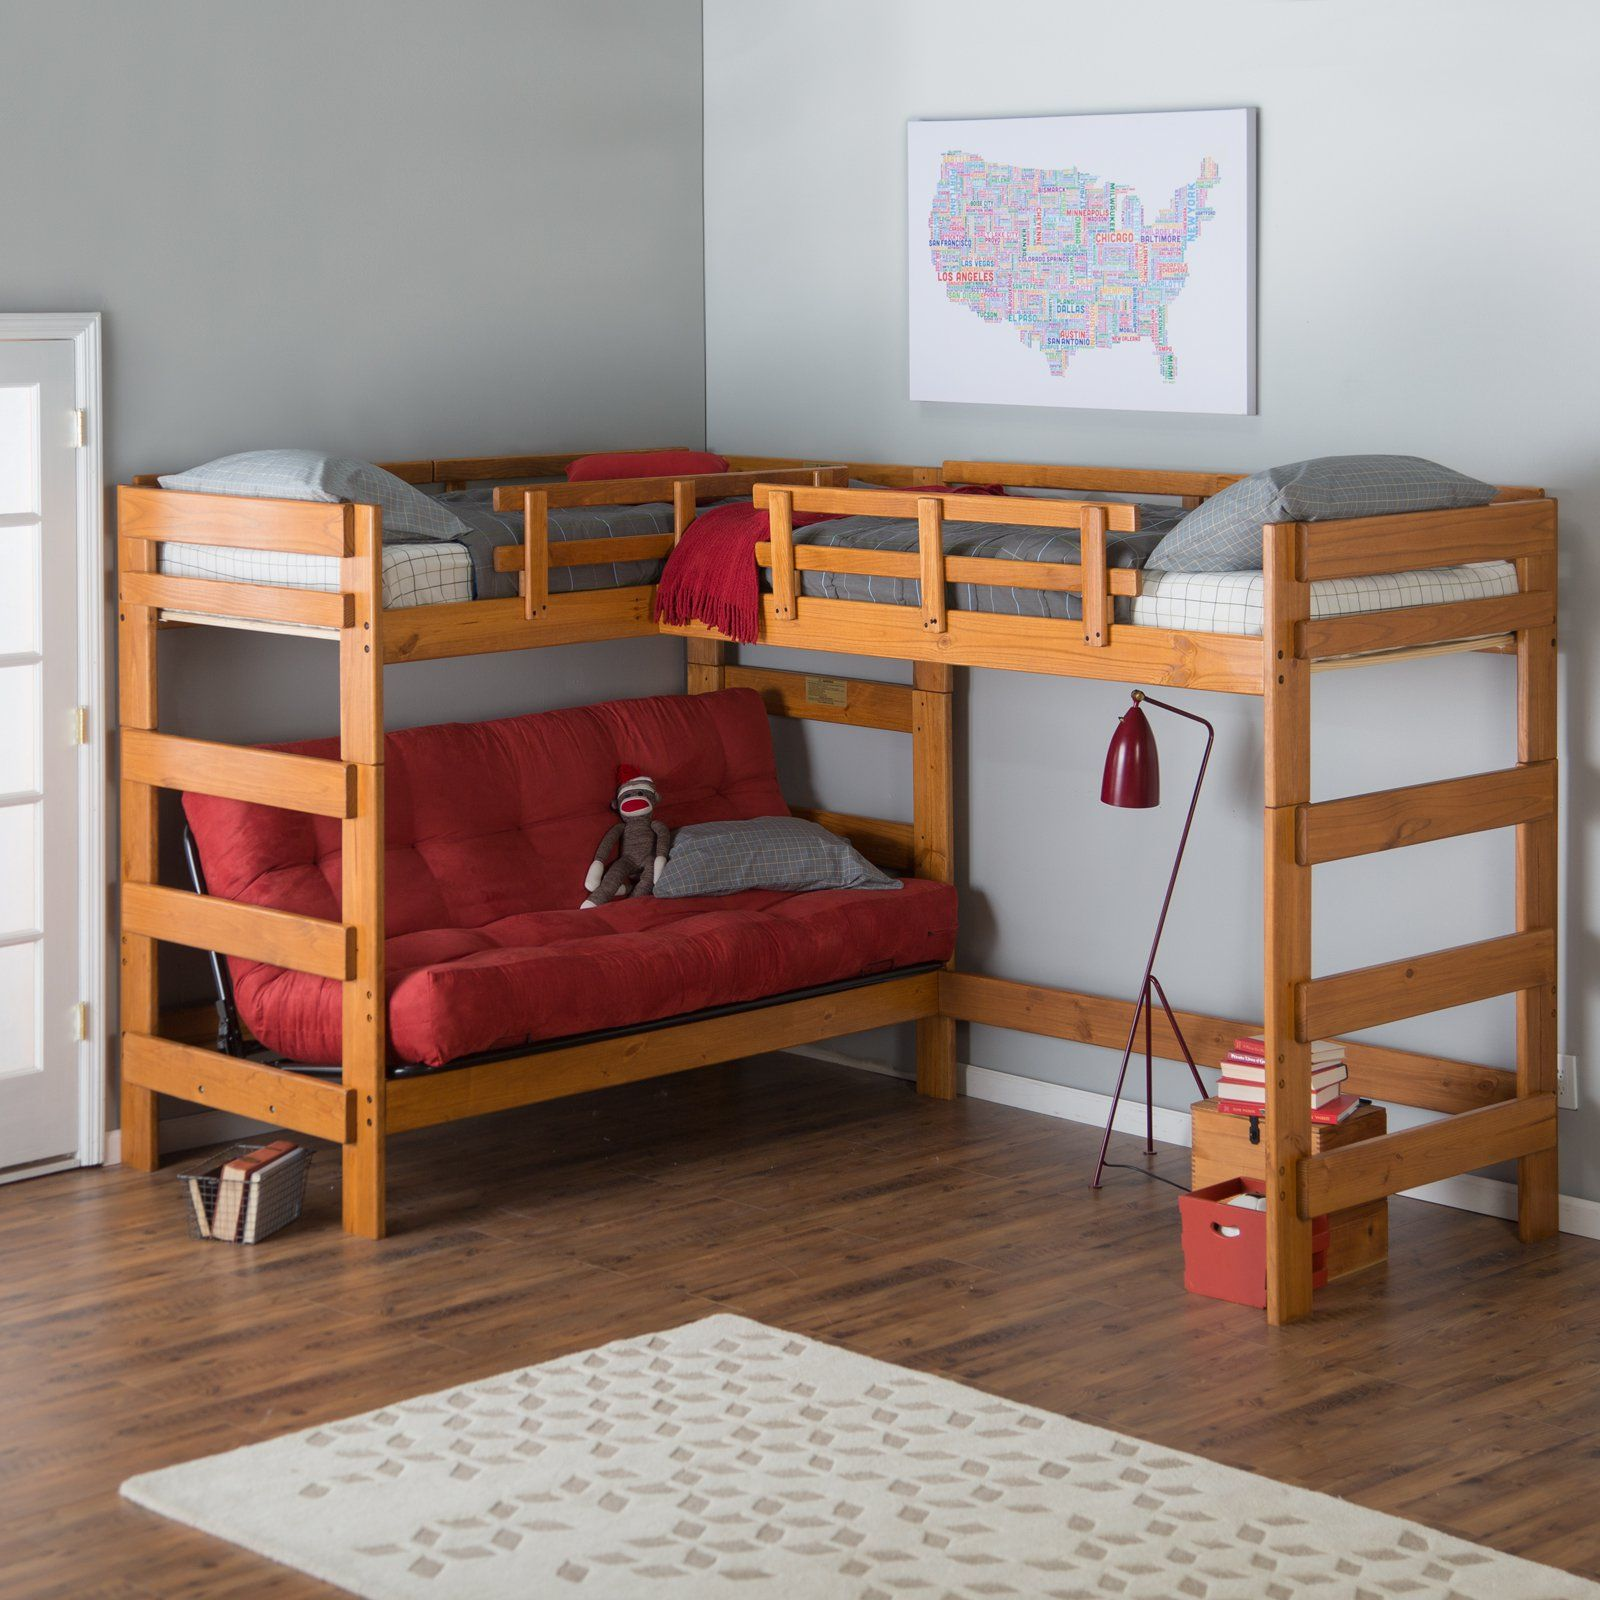 Woodcrest Heartland Futon Bunk Bed With Extra Loft Honey Pine Your Kid Will Love